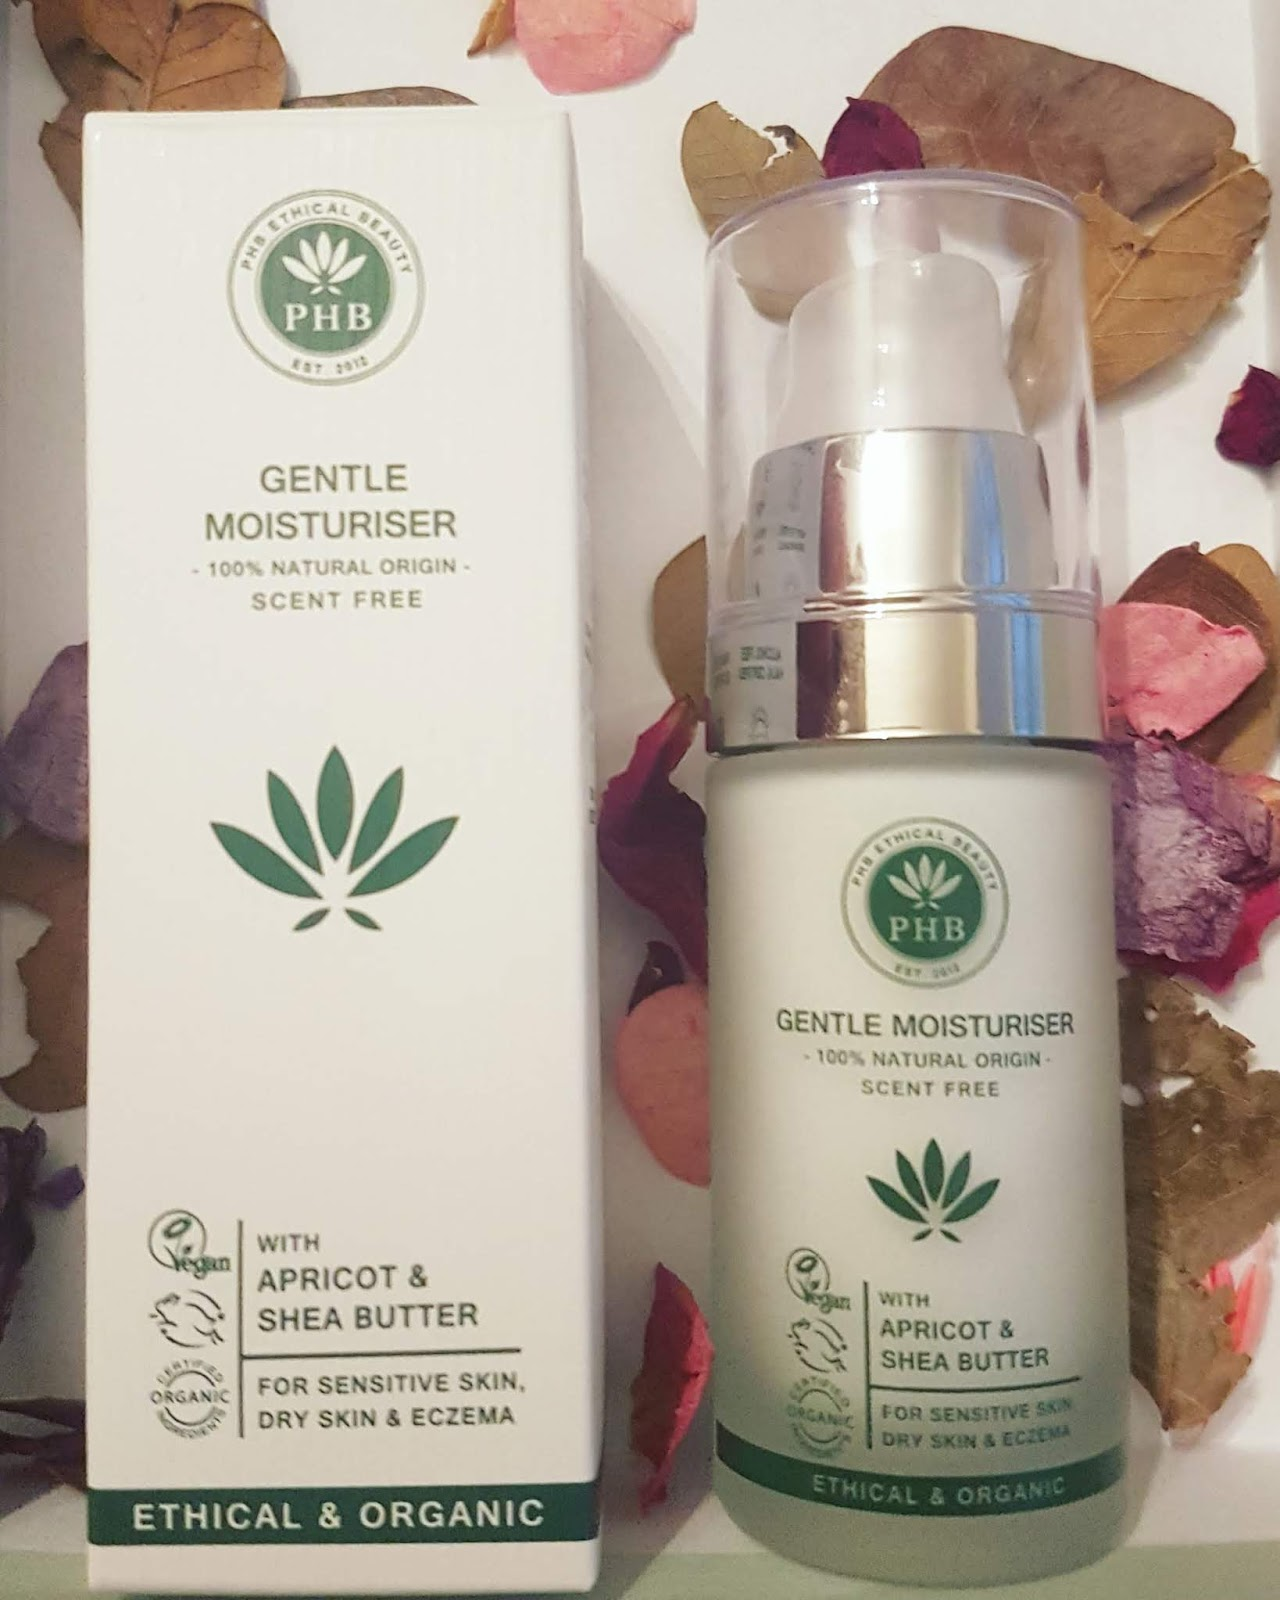 PHB Gentle Moisturizer, 100% natural scent free